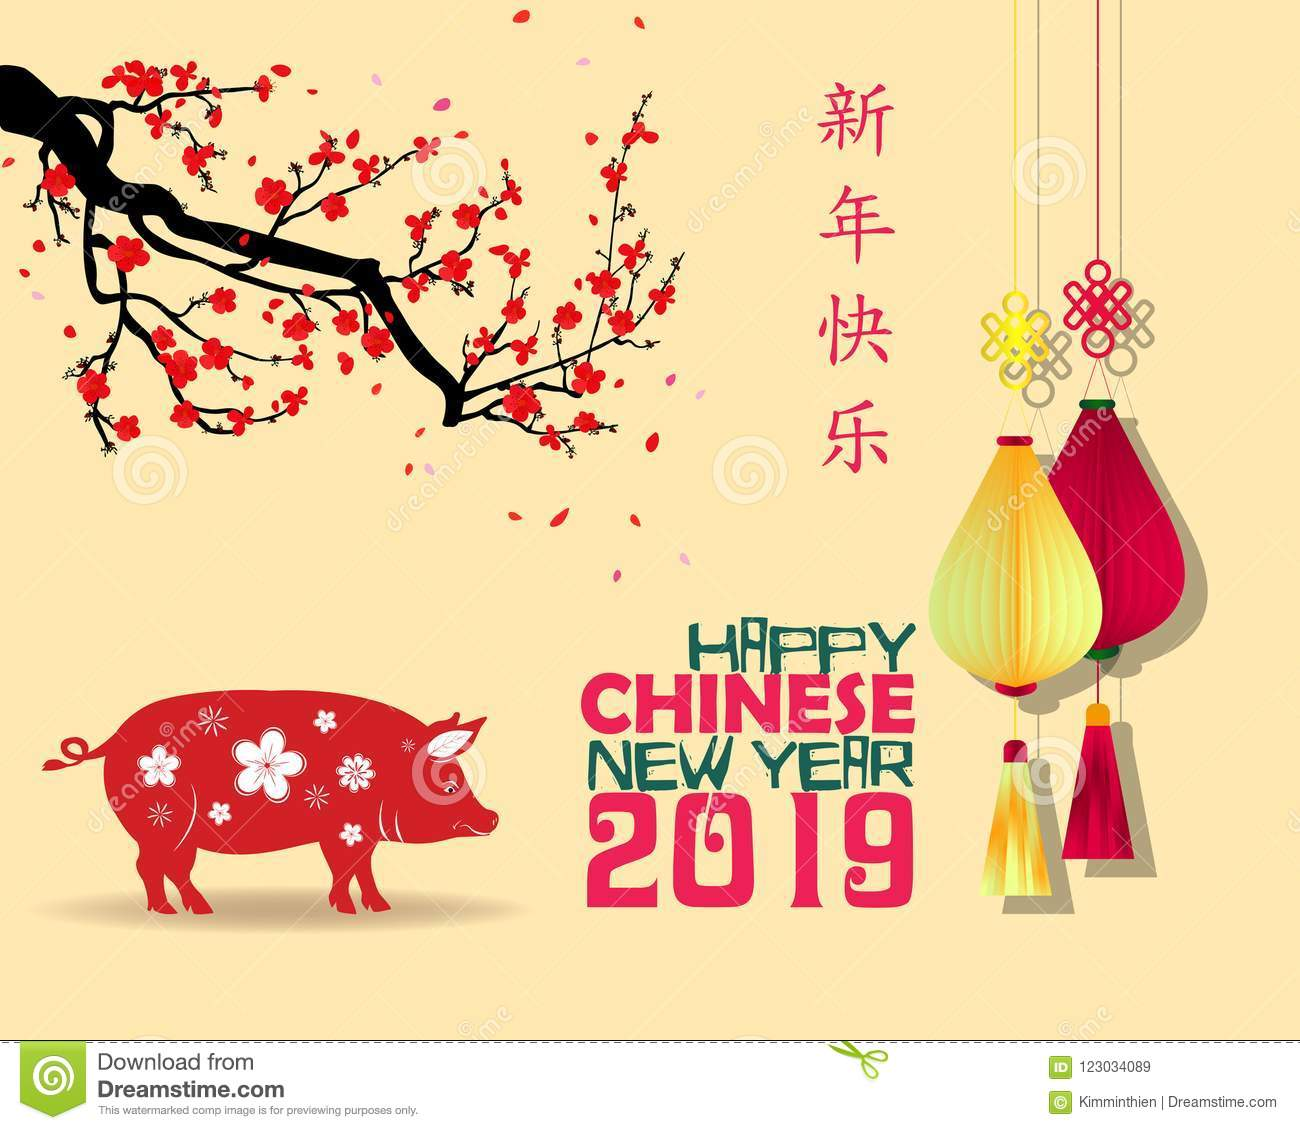 Creative Chinese New Year 2019 Invitation Cards. Year Of The Pig ...